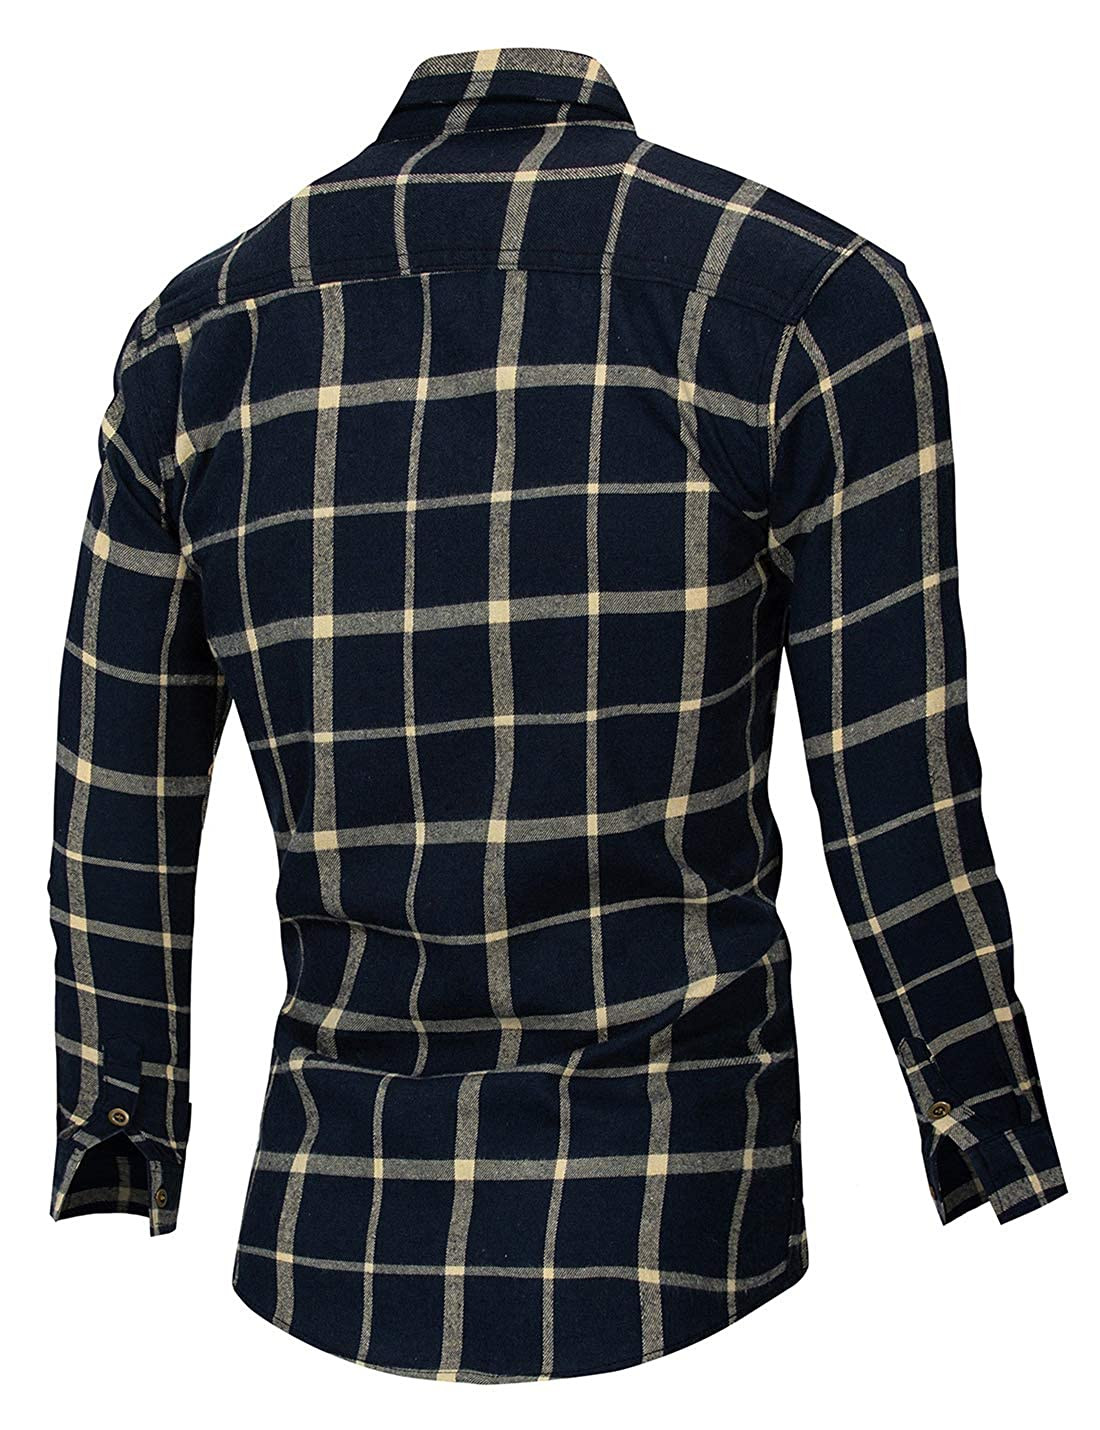 Springrain Mens Casual Regular Fit Button Down Long Sleeve Cotton Plaid Shirt